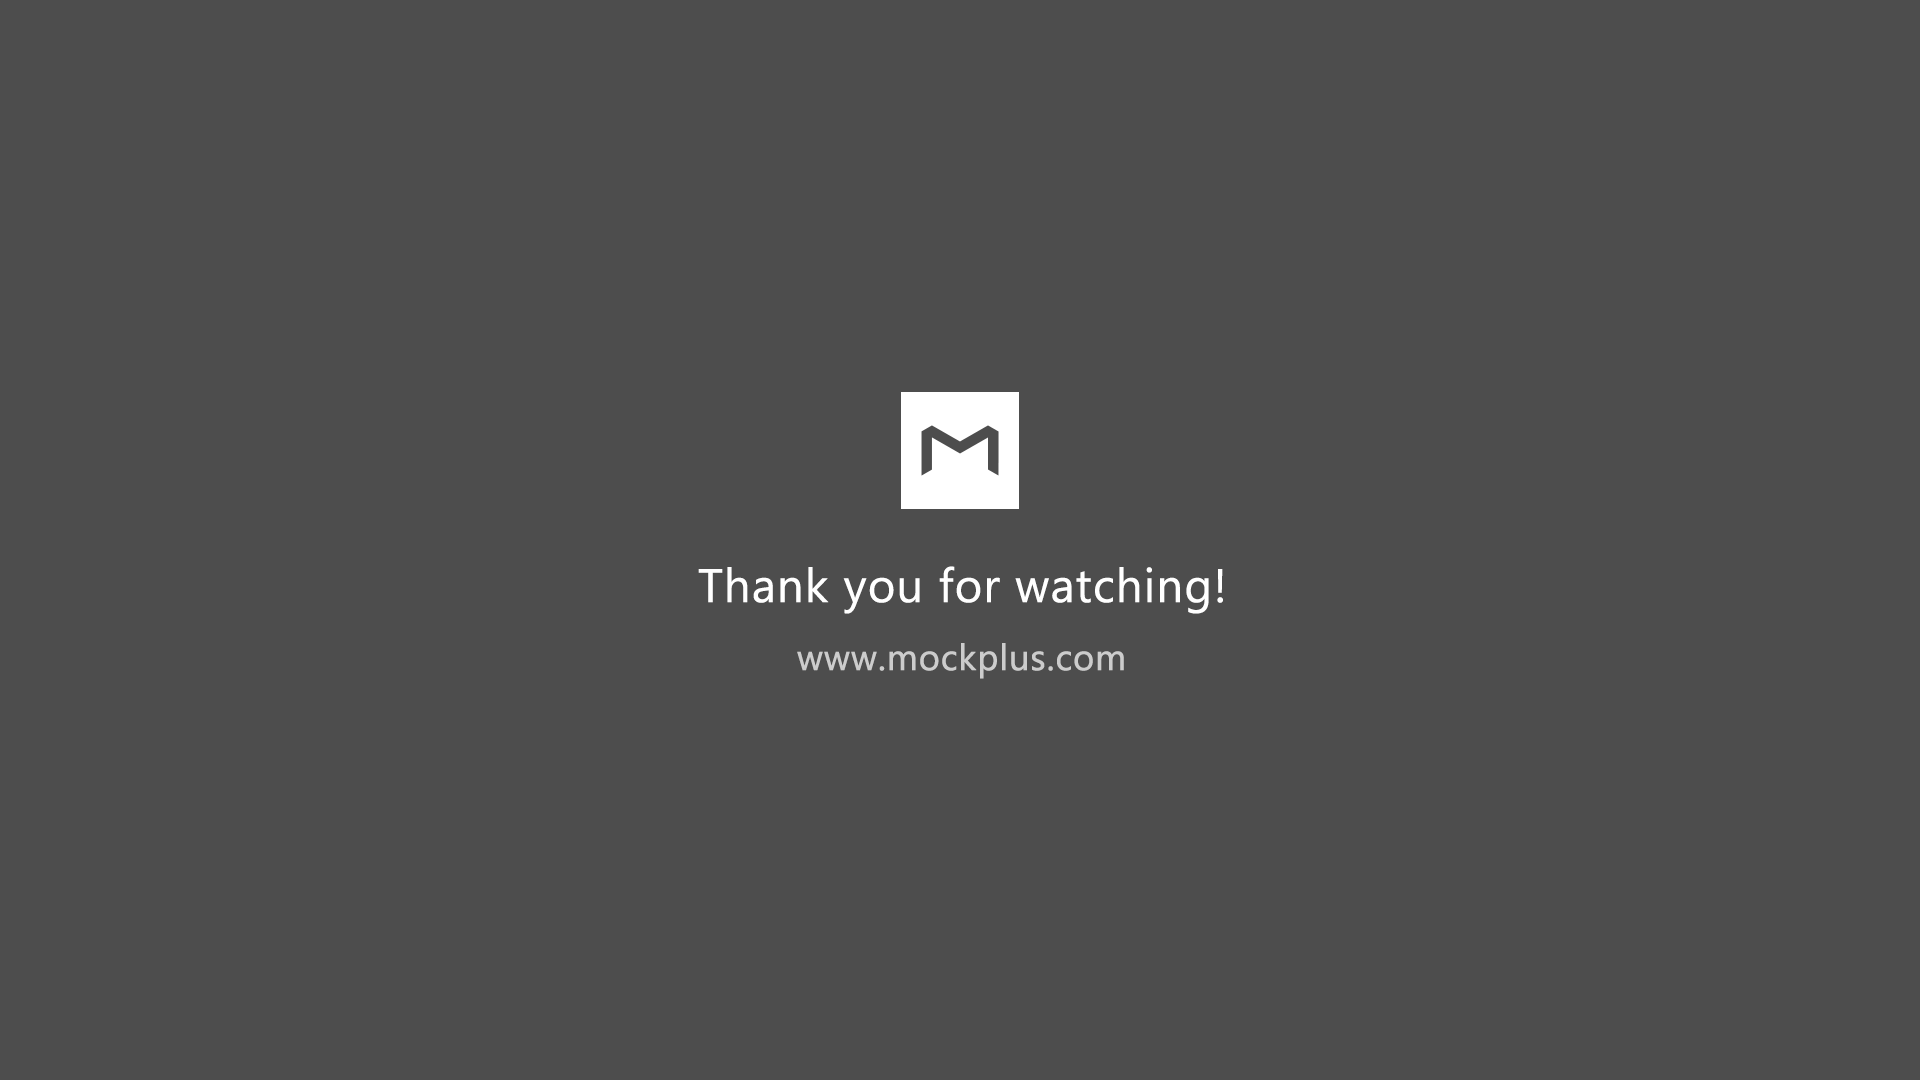 Mockplus Rapid Prototyping Tutorial - 4 Interactions with 1 Button